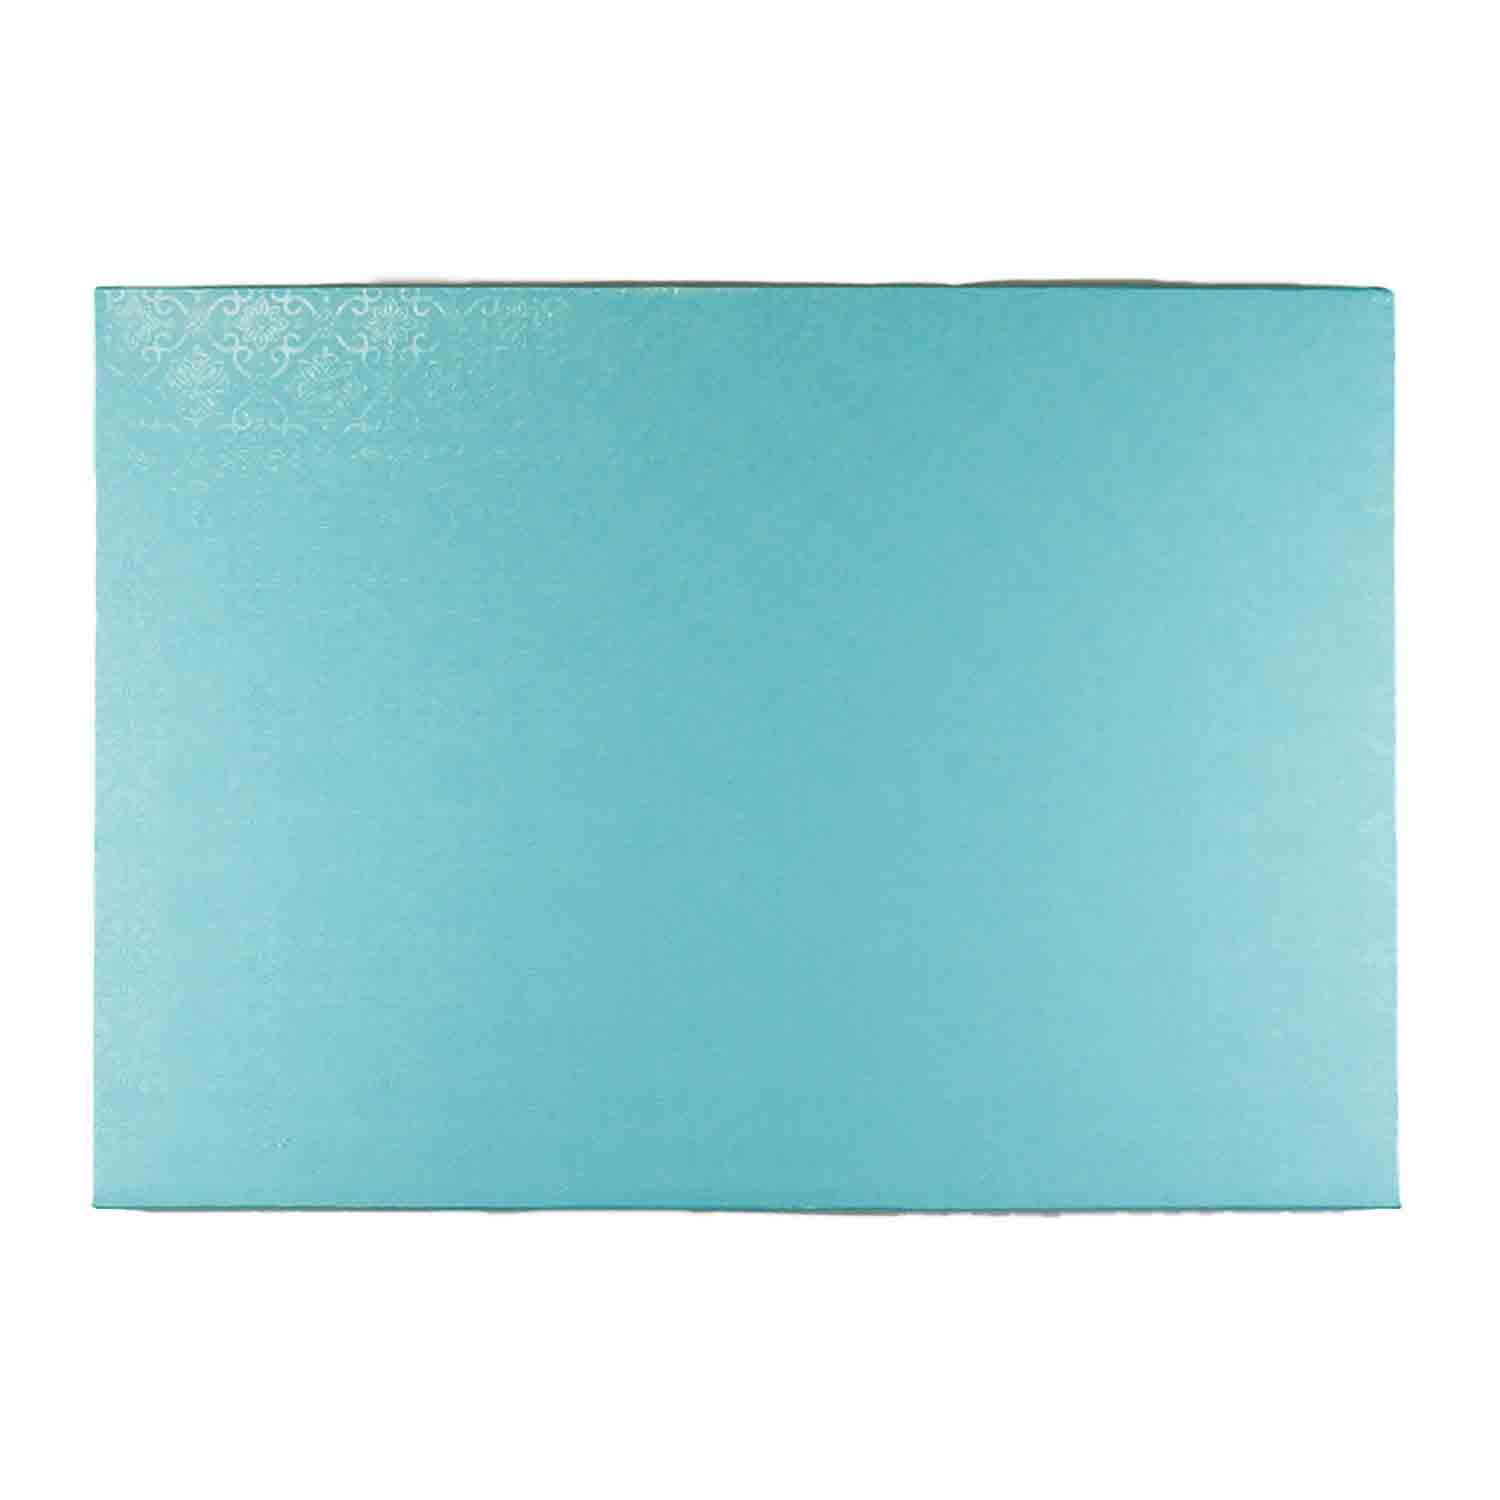 "10"" x 14"" Rectangle Tahiti Blue Foil Quarter Sheet Cake Drum"